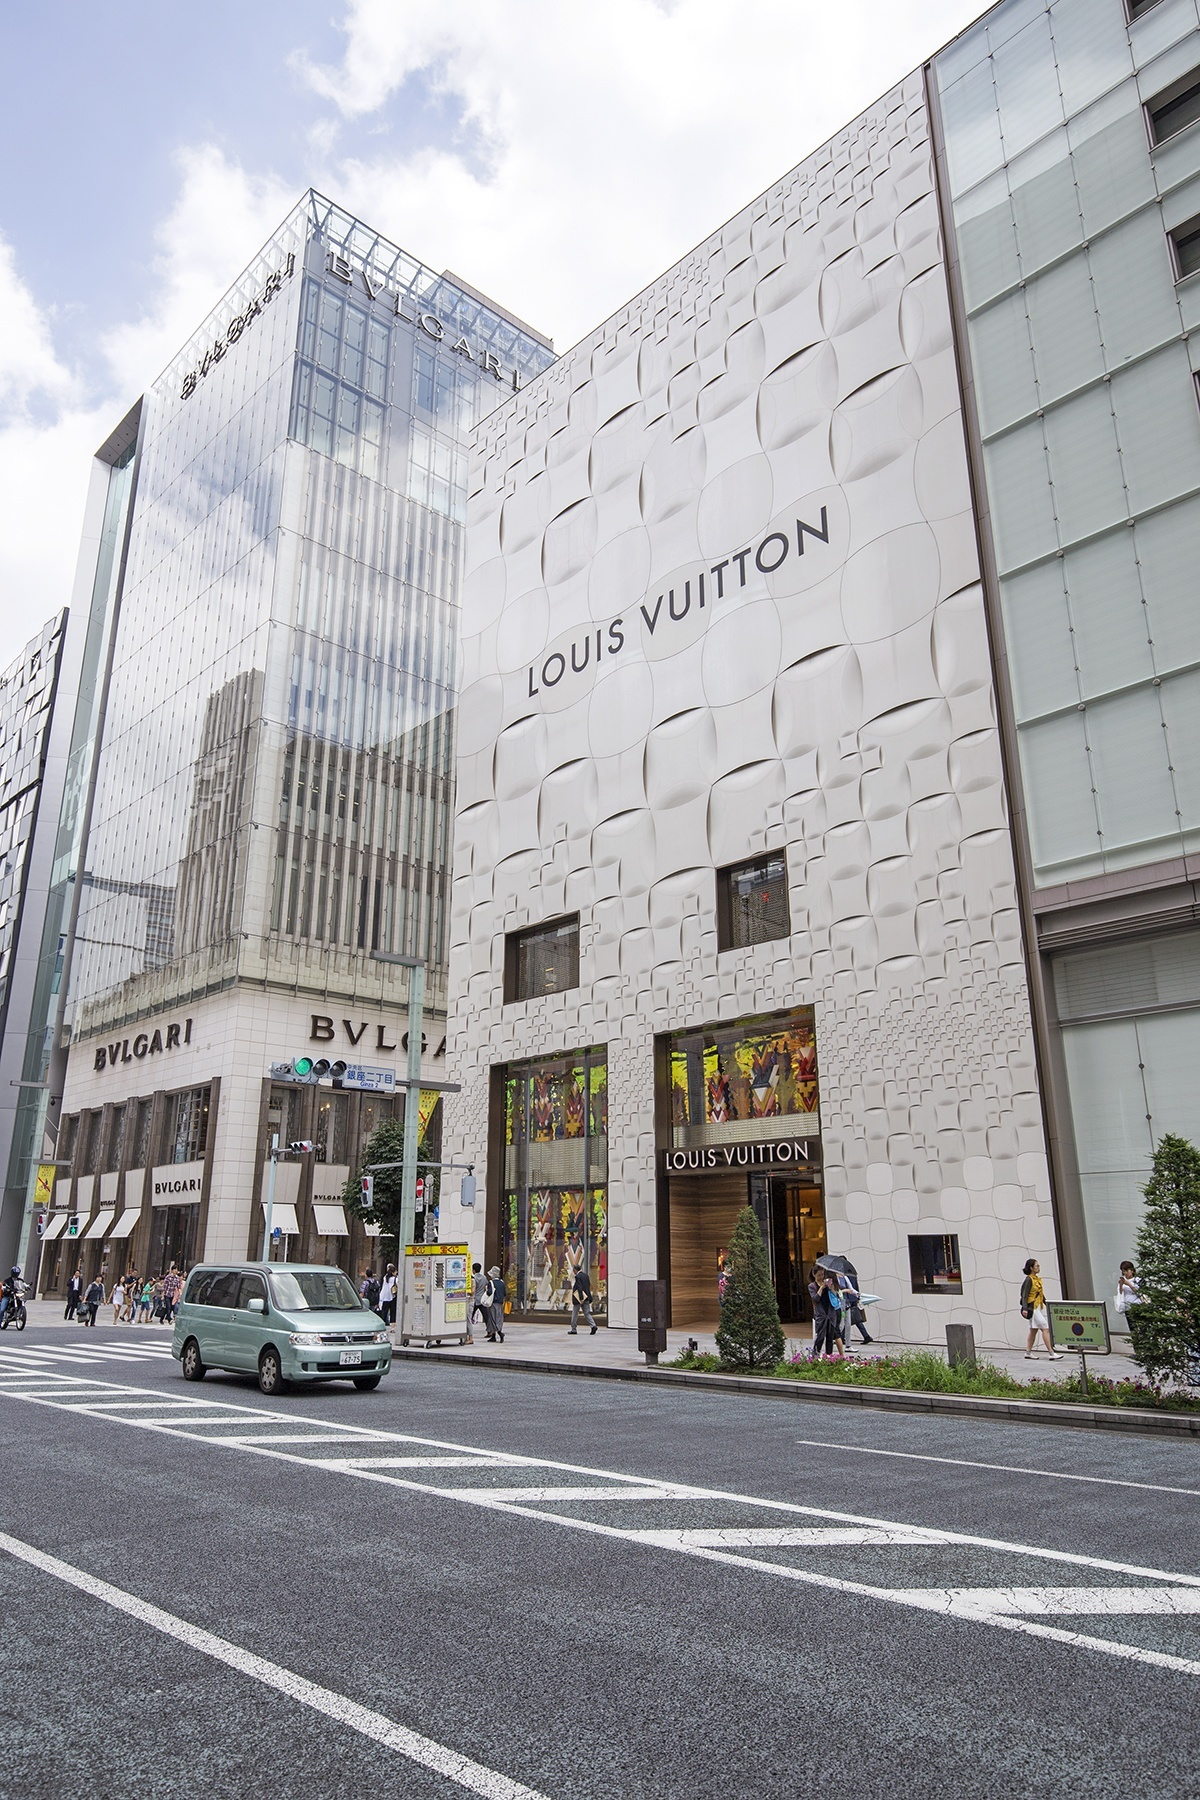 Contemporary architecture in Tokyo | InsideJapan Tours Blog